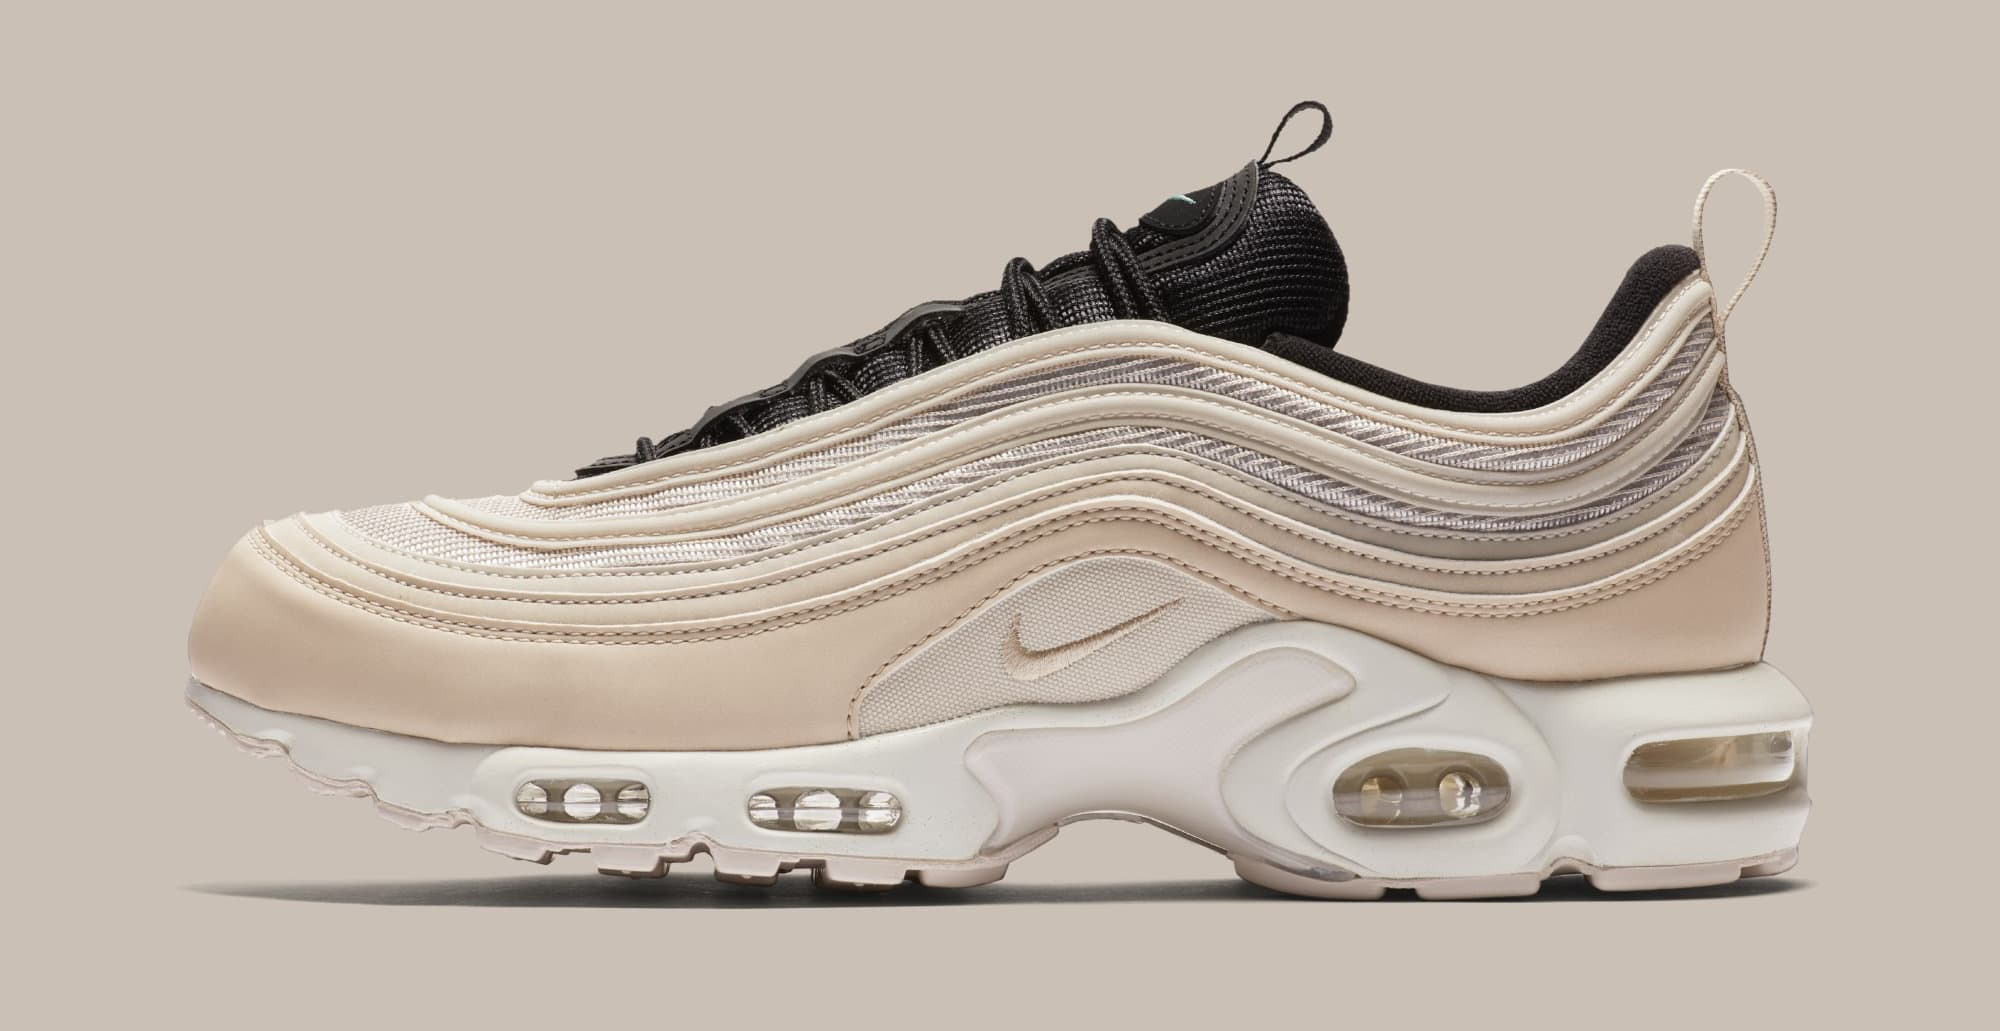 the latest 3d195 8bd0f Image via Nike Nike Air Max Plus/97 'Light Orewood Brown' AH8143-100  (Lateral